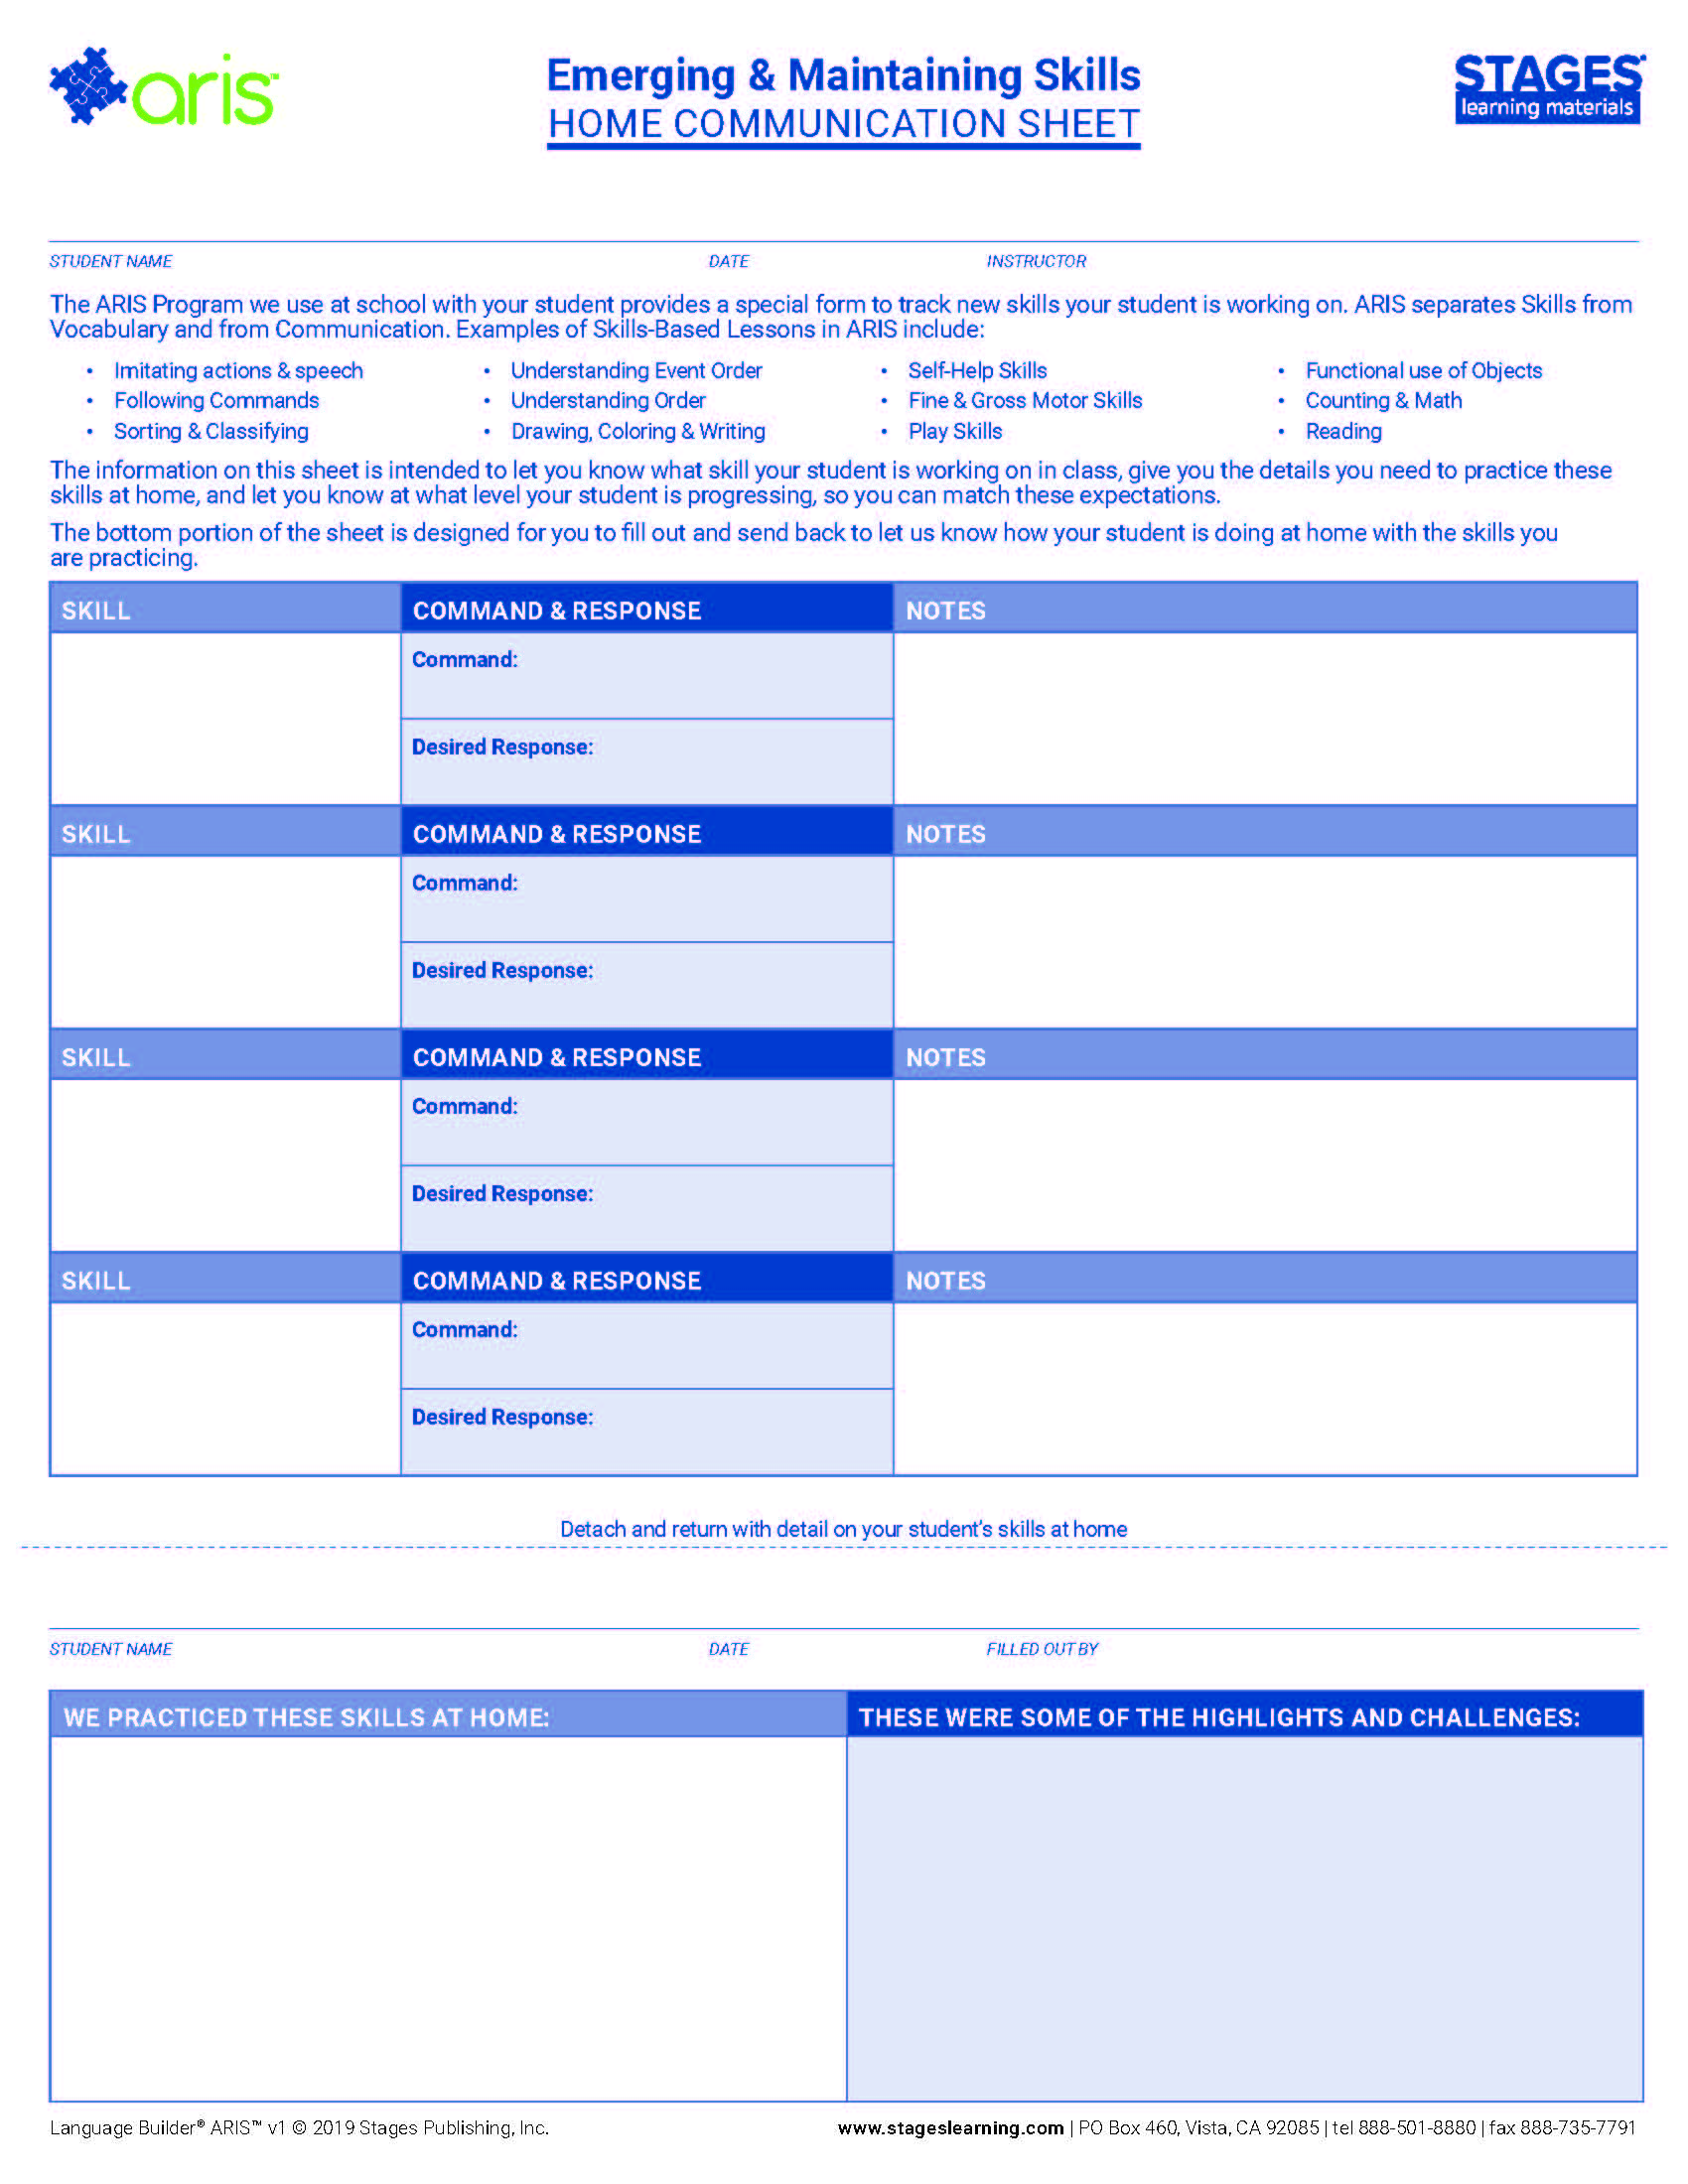 Picture of Emerging and Maintaining Skills Home Communication Sheet